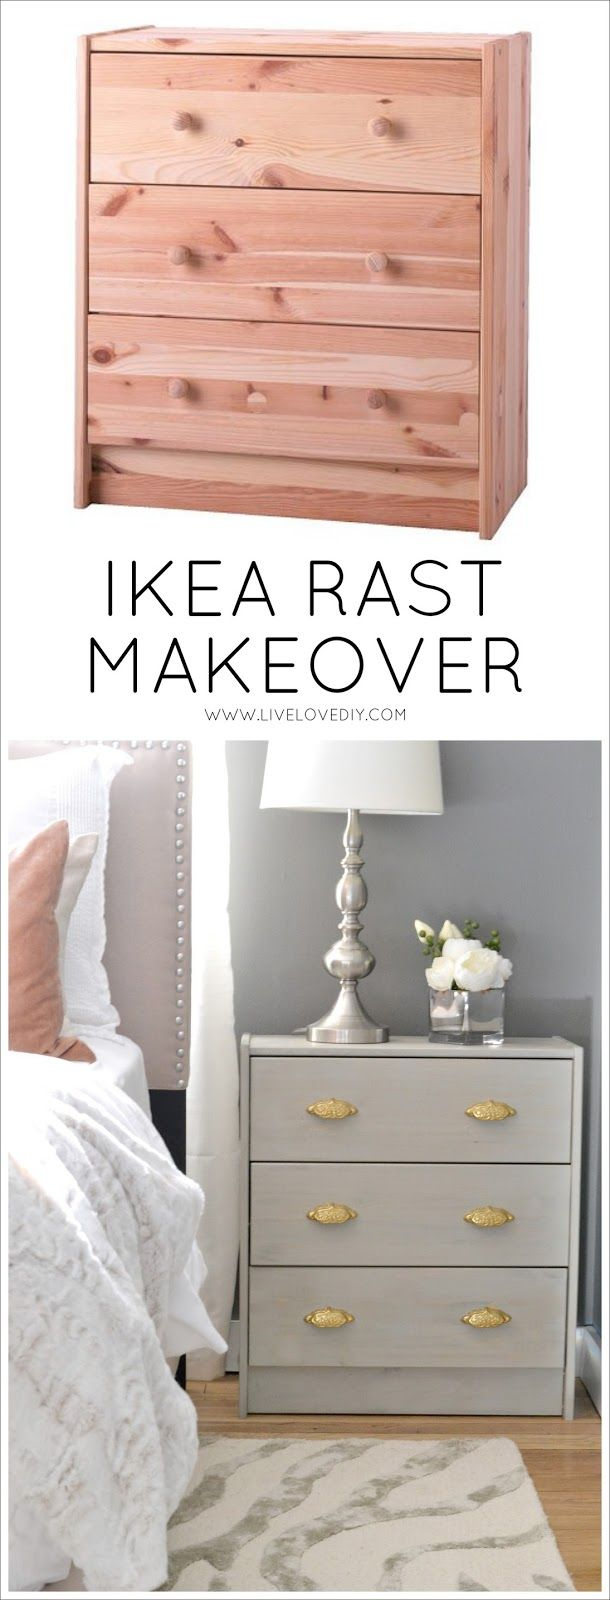 25 simple and creative ikea rast hacks - Bedroom Idea Ikea